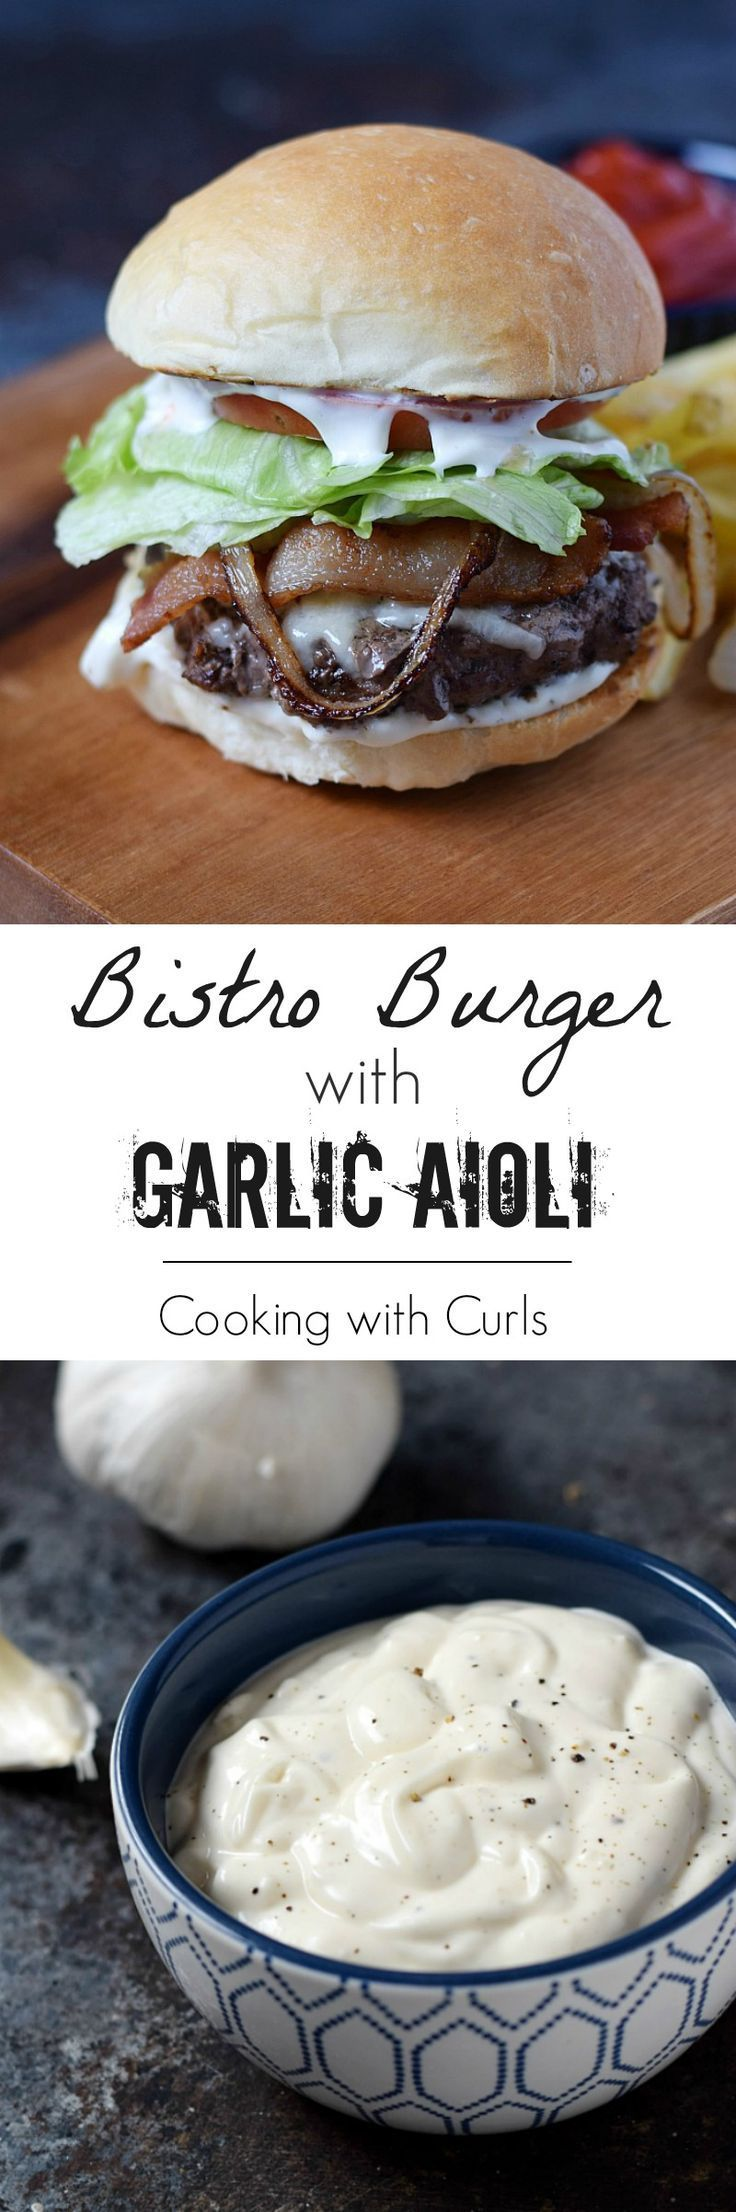 This delicious Bistro Burger is topped with cheddar cheese, bacon, caramelized onions, and and amazing garlic aioli sauce, and has become my absolute favorite burger | http://cookingwithcurls.com